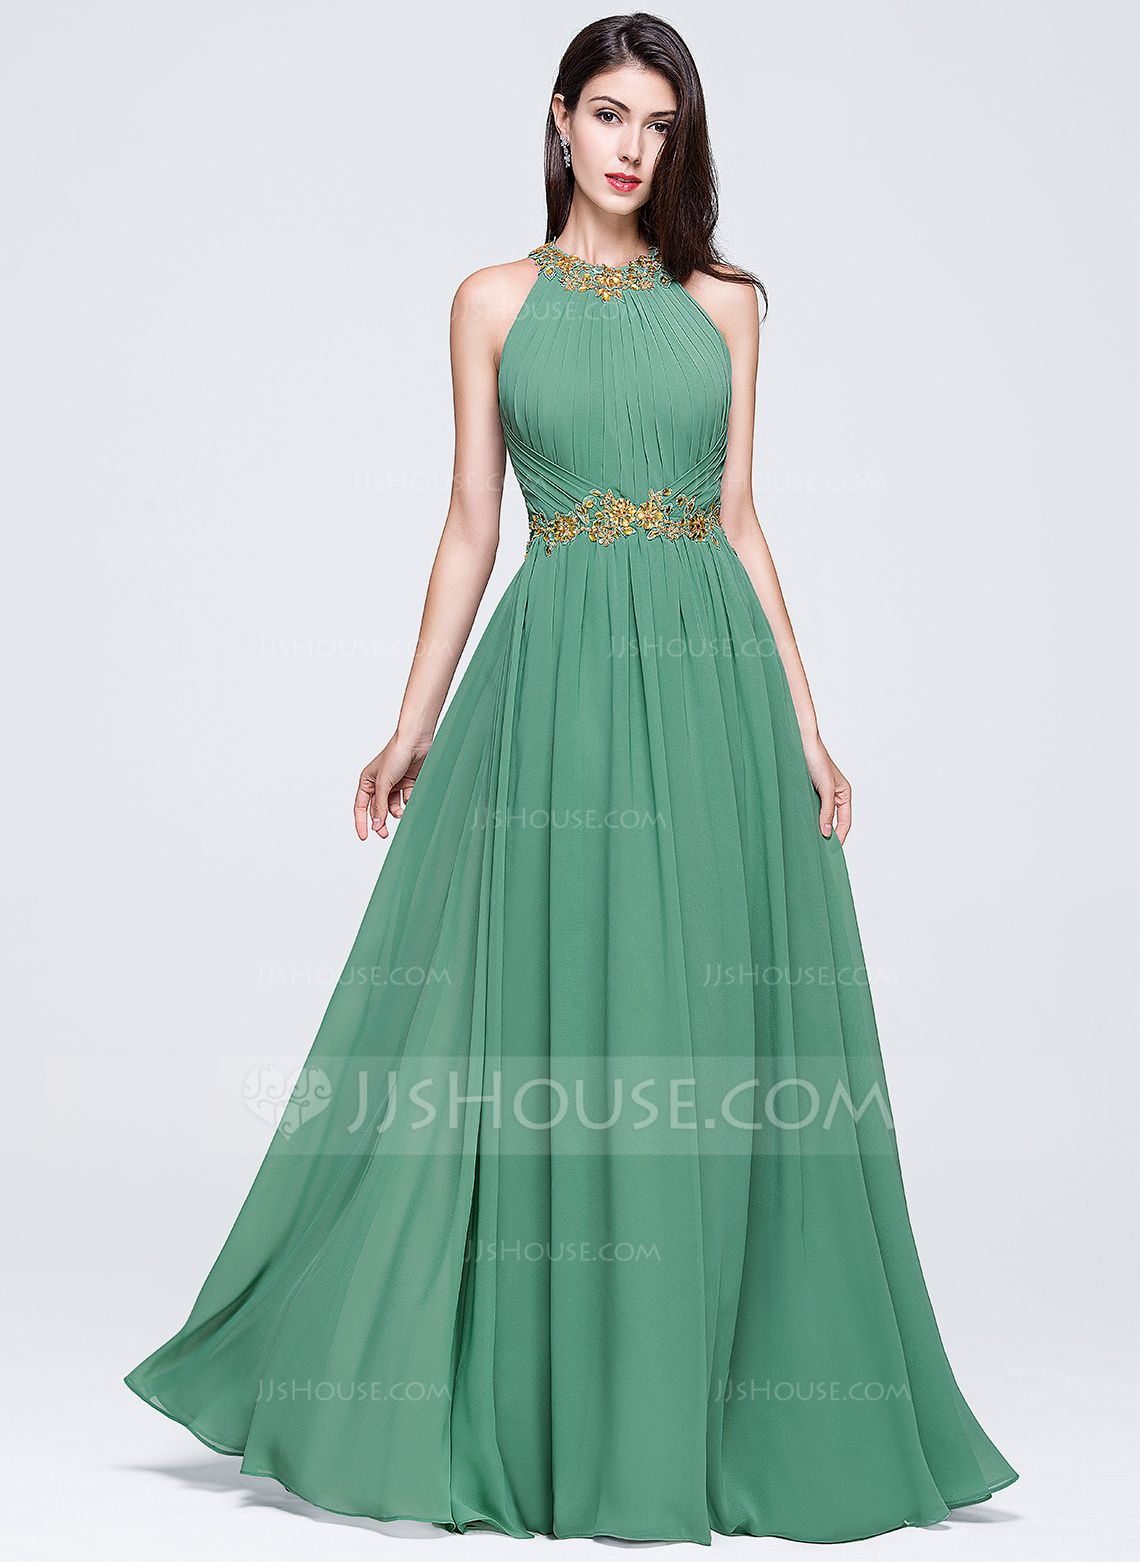 A-Line Princess Scoop Neck Floor-Length Chiffon Prom Dress With Ruffle  Beading Appliques Lace Sequins (018070360) - JJsHouse 56fb1f42b532